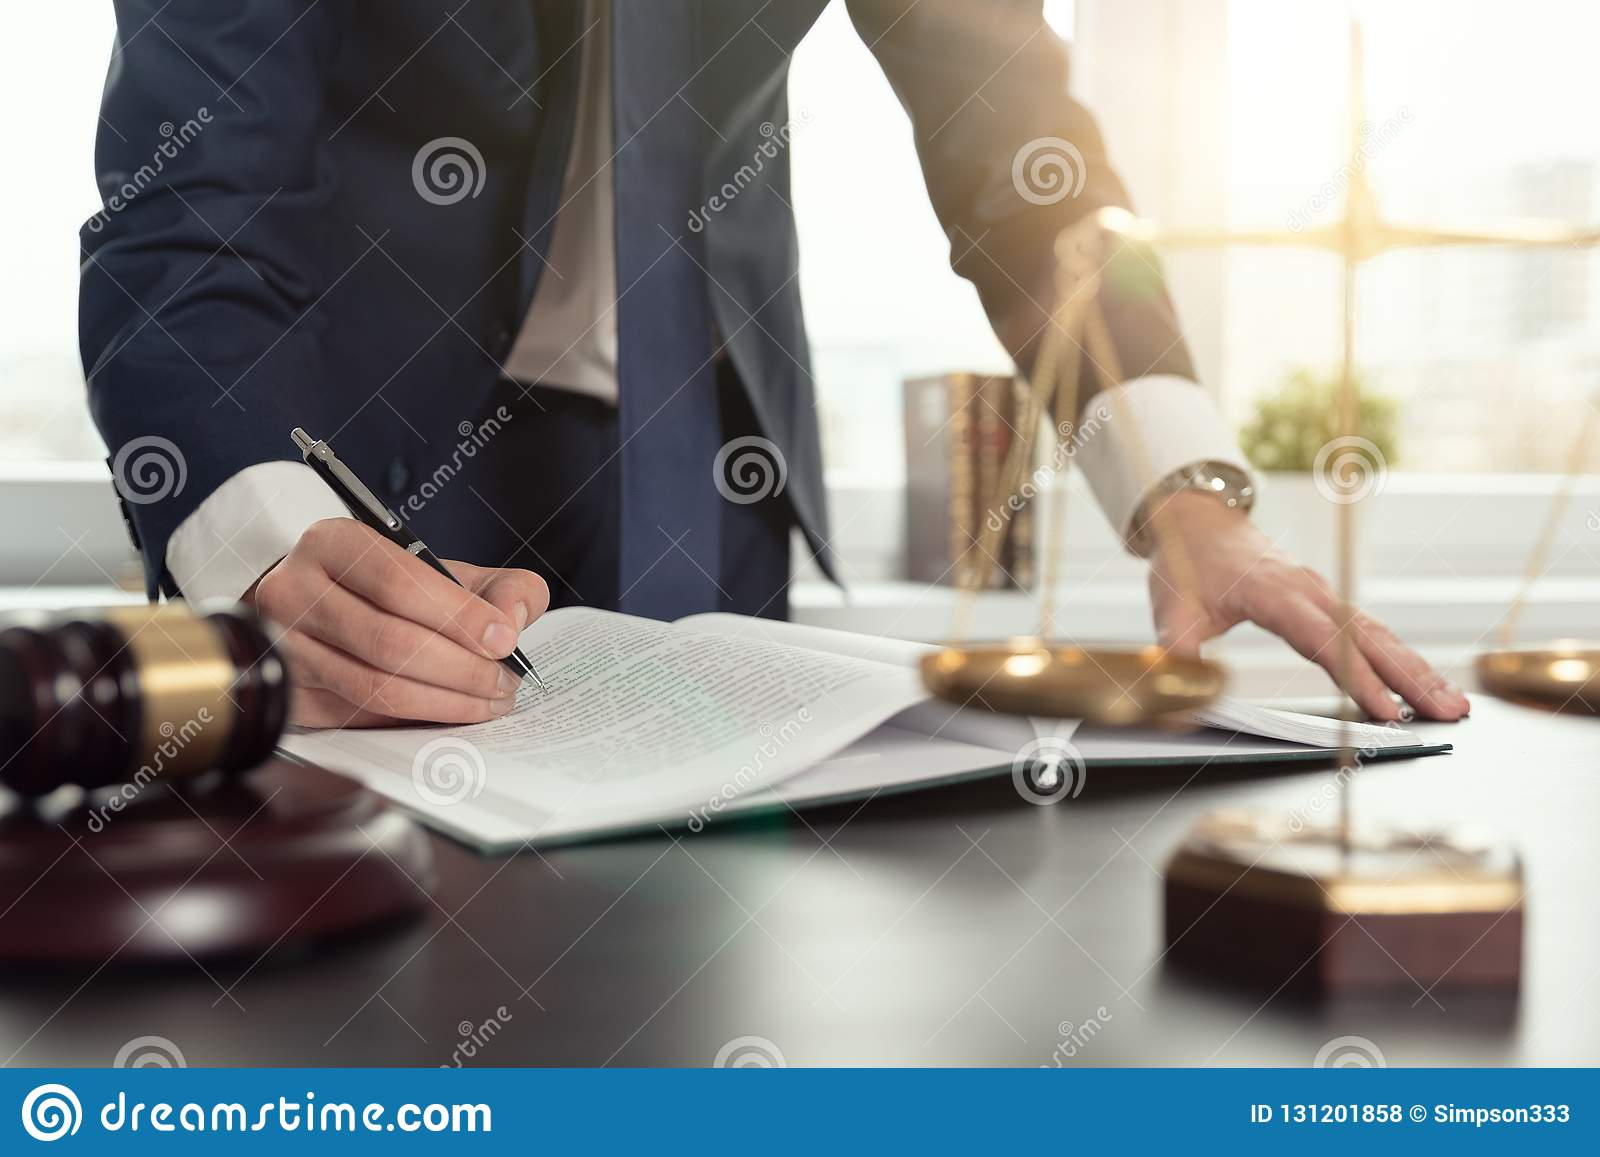 Lawyer Working With Documents  Justice Concept  Stock Photo